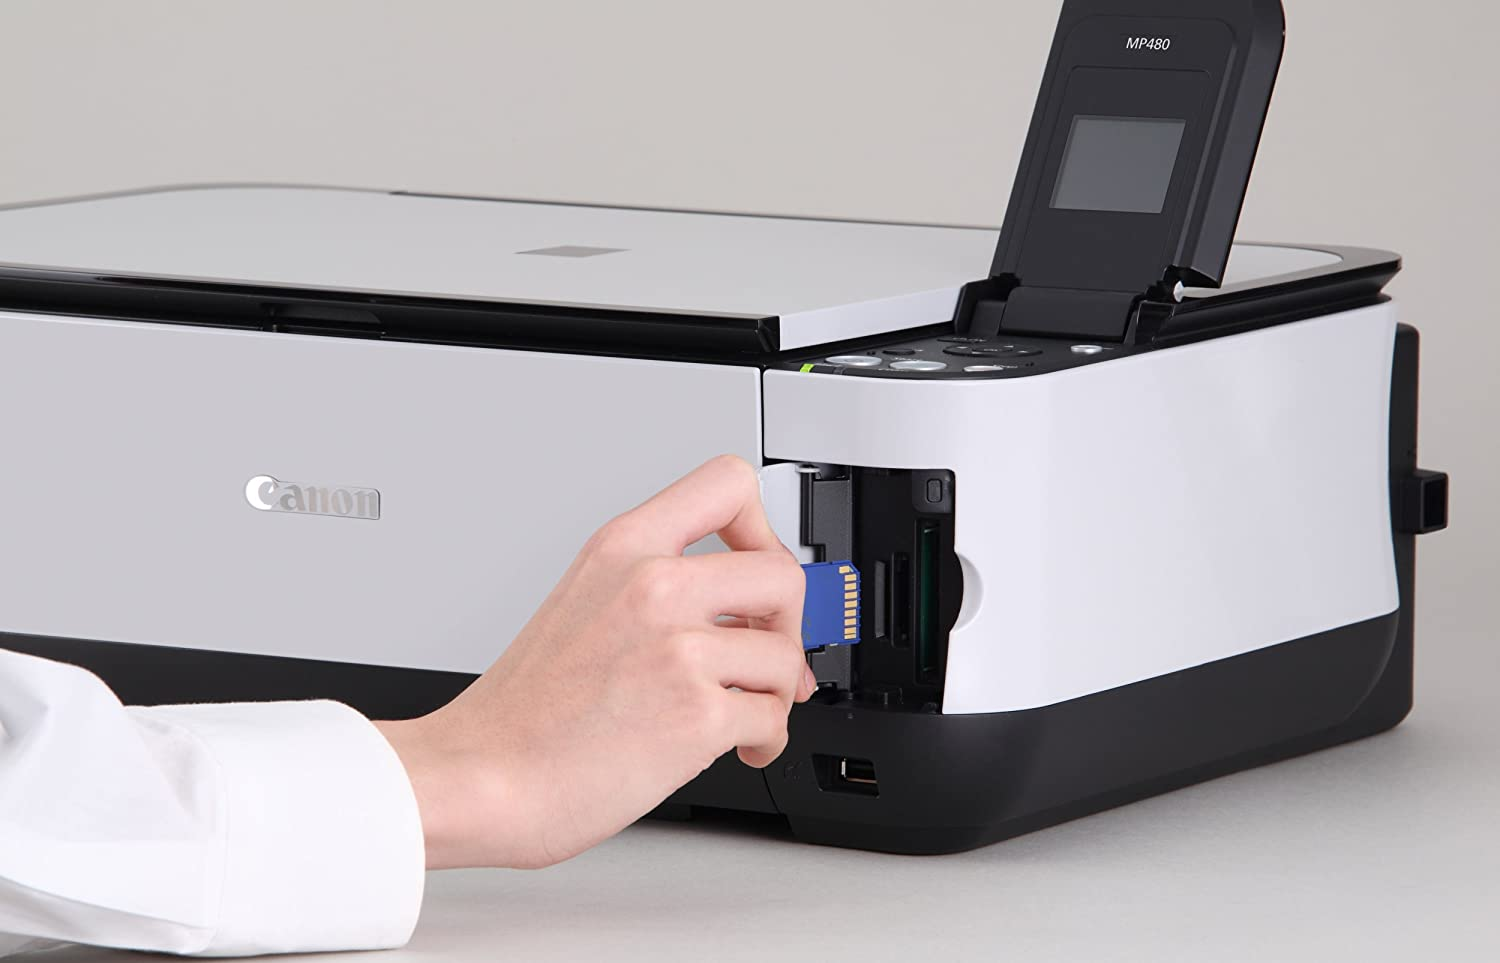 Canon 480 Printer Manual Product User Guide Instruction